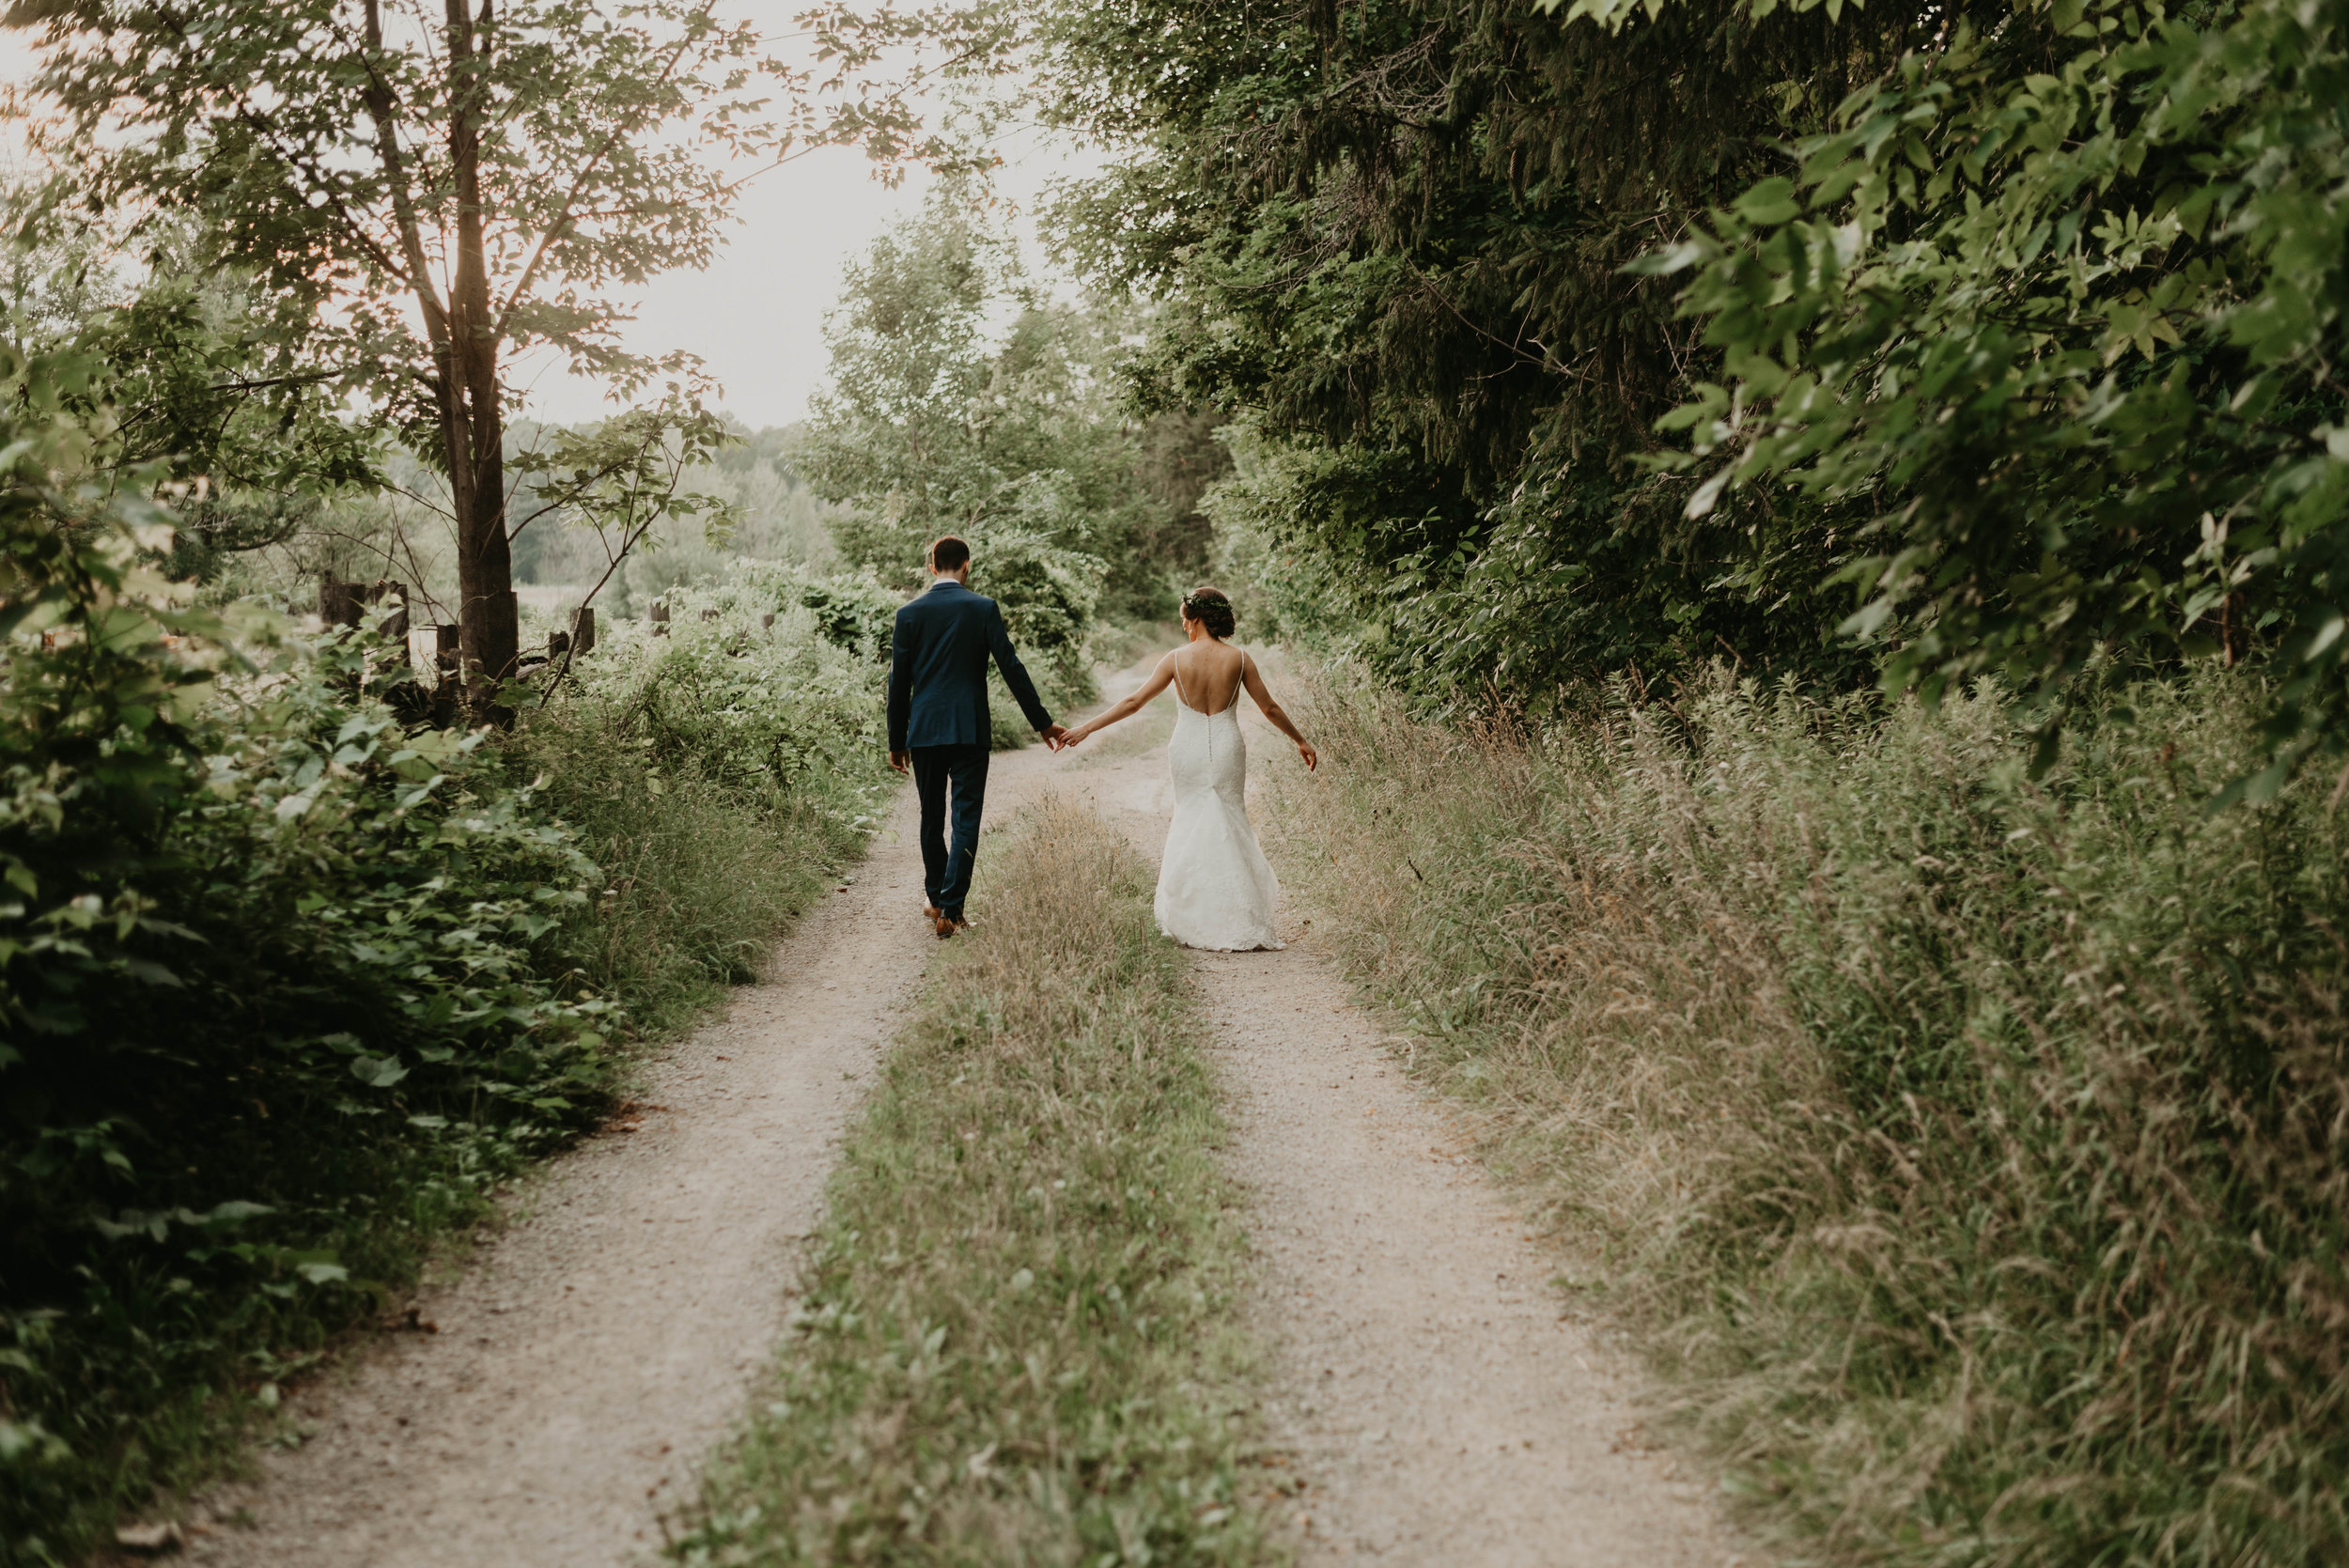 Bride and Groom taking a wedding day stroll.